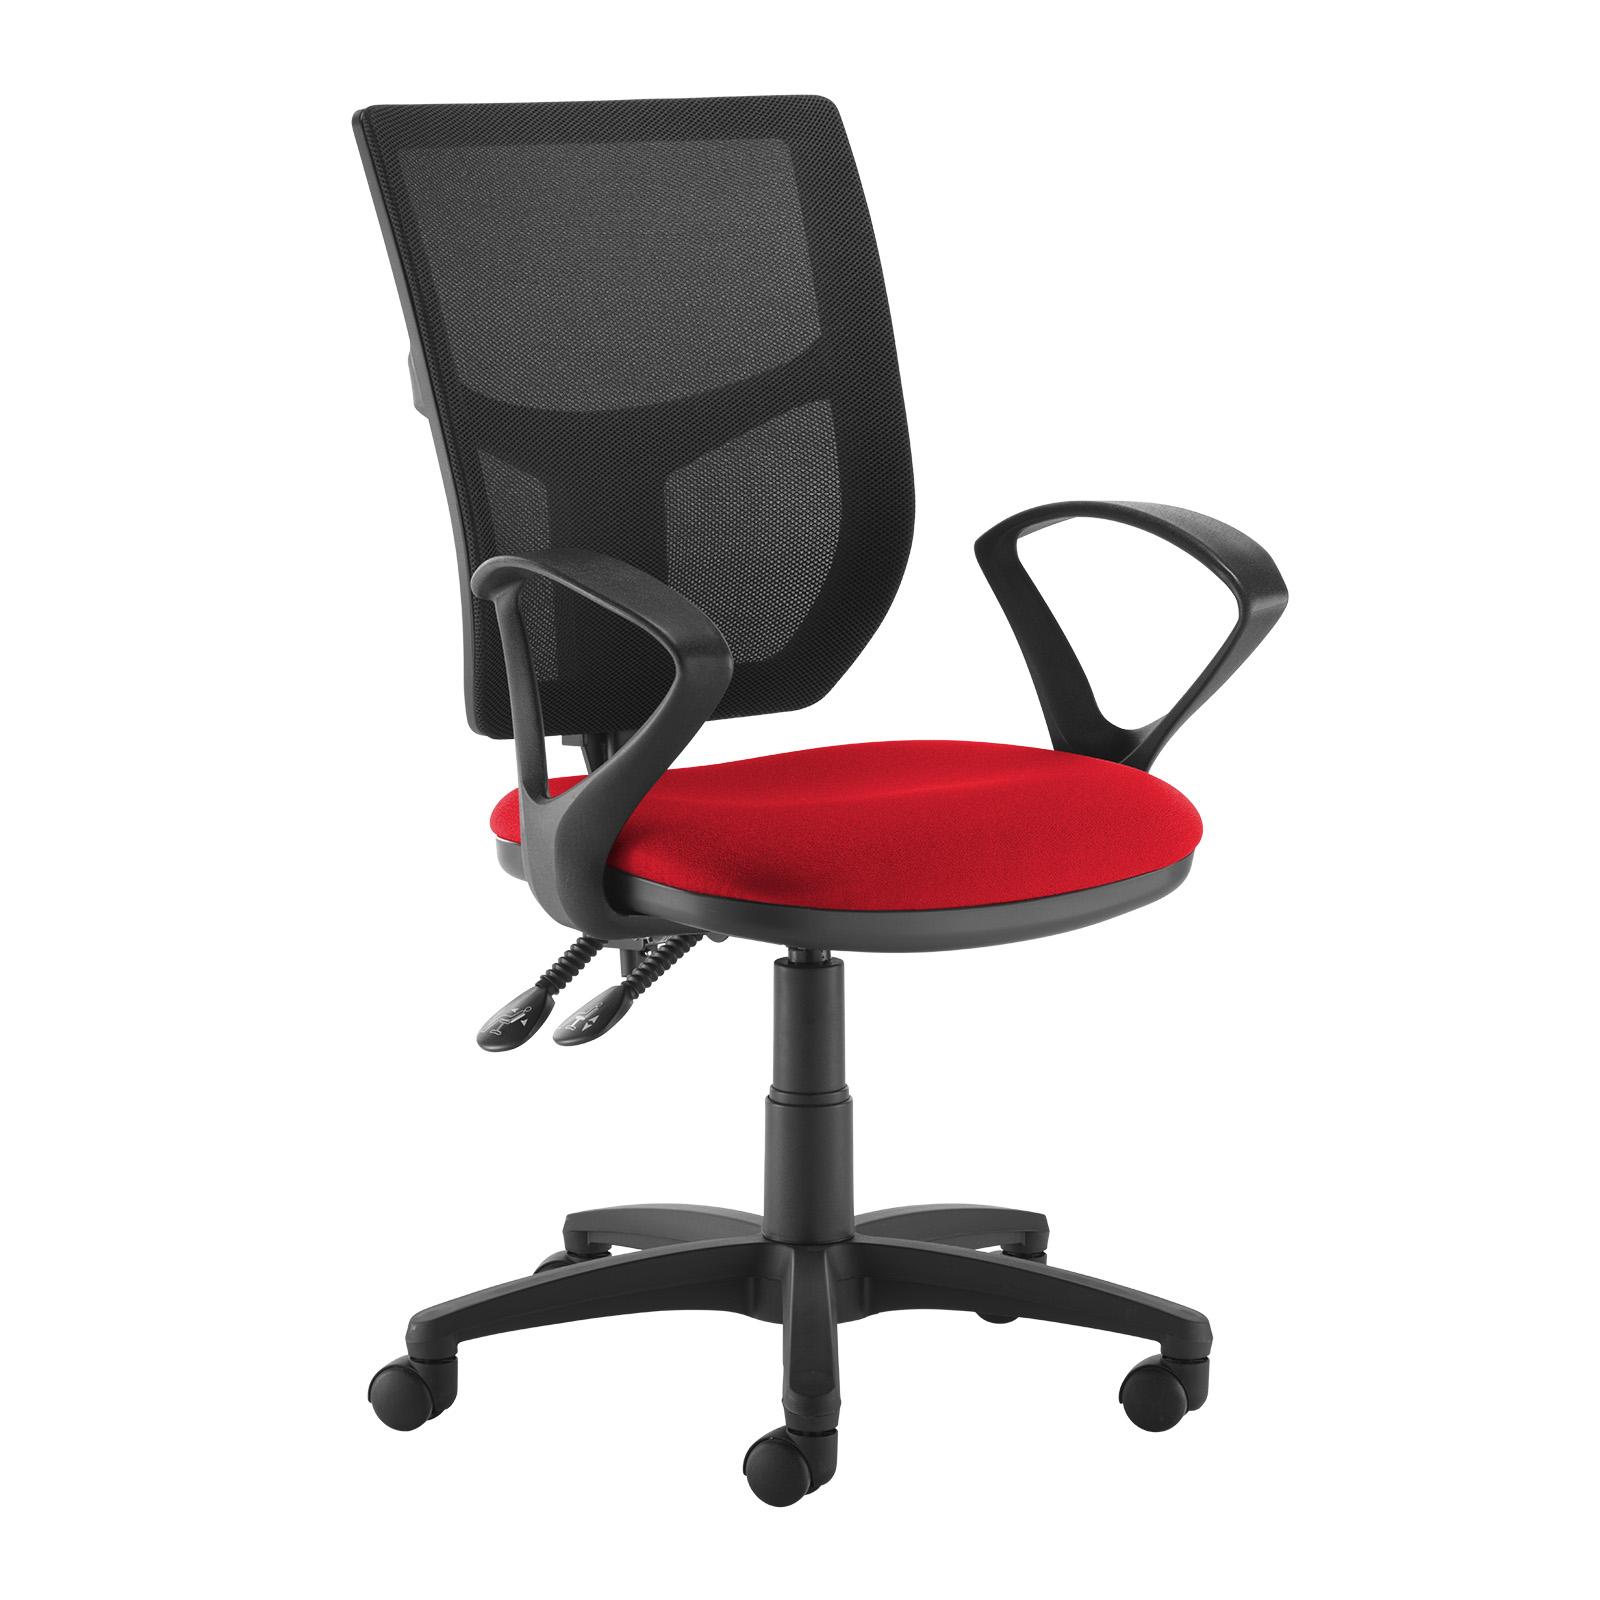 Desk Chairs Altino 2 lever high mesh back operators chair with fixed arms - red